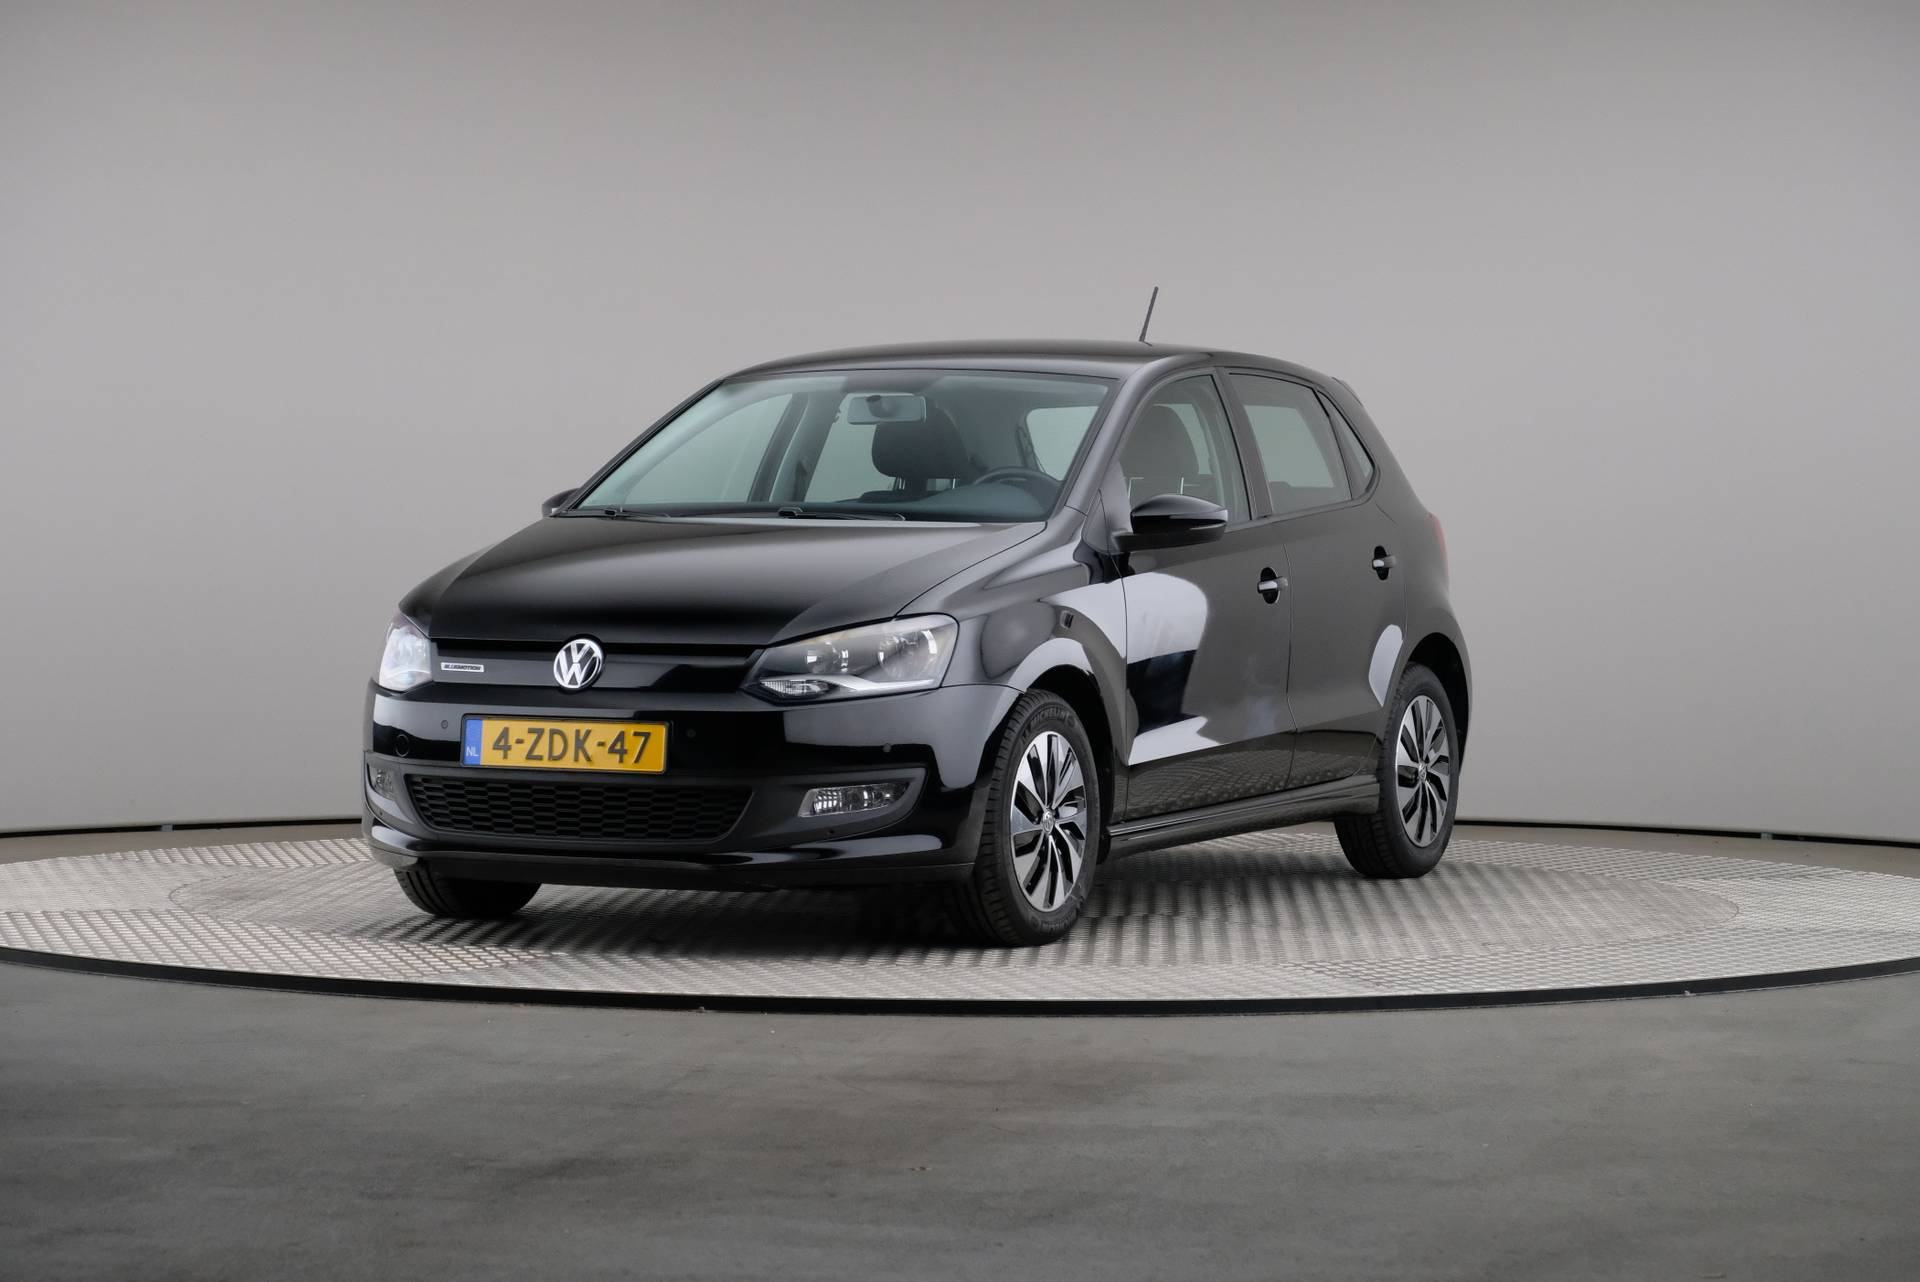 Volkswagen Polo 1.4 TDI BlueMotion Executive plus, Navigatie, 360-image35